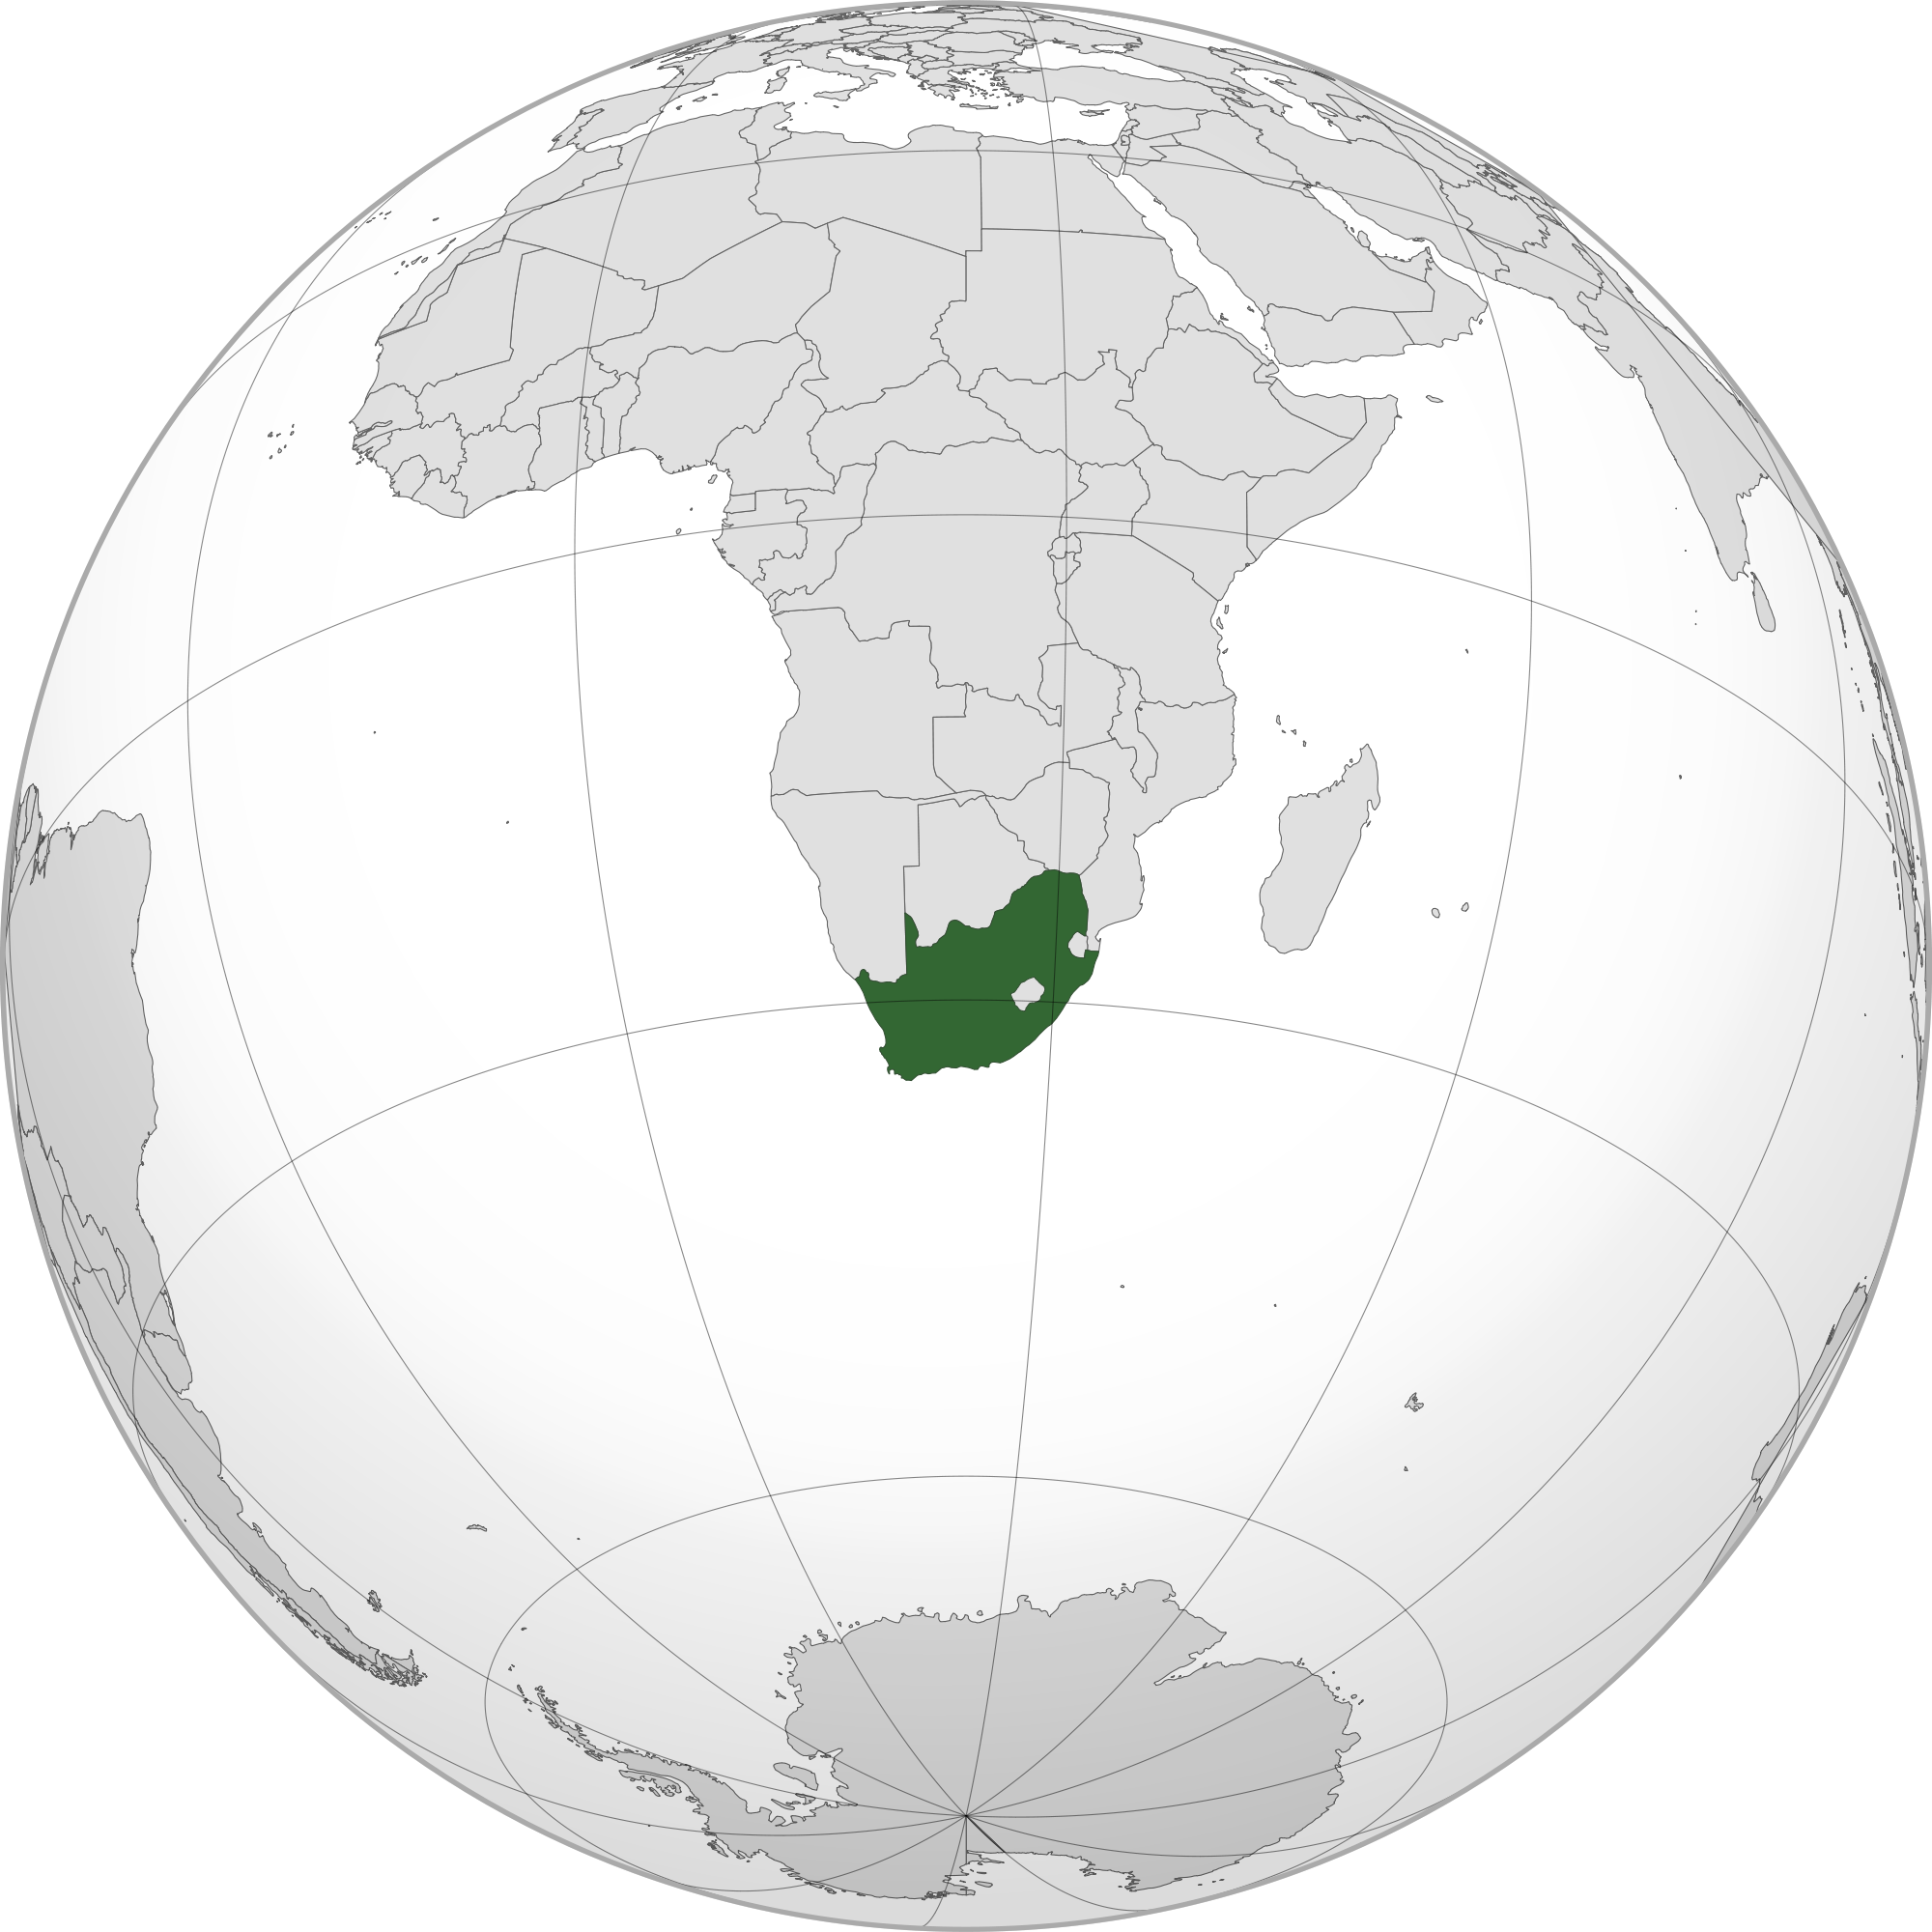 Location of the South Africa in the World Map